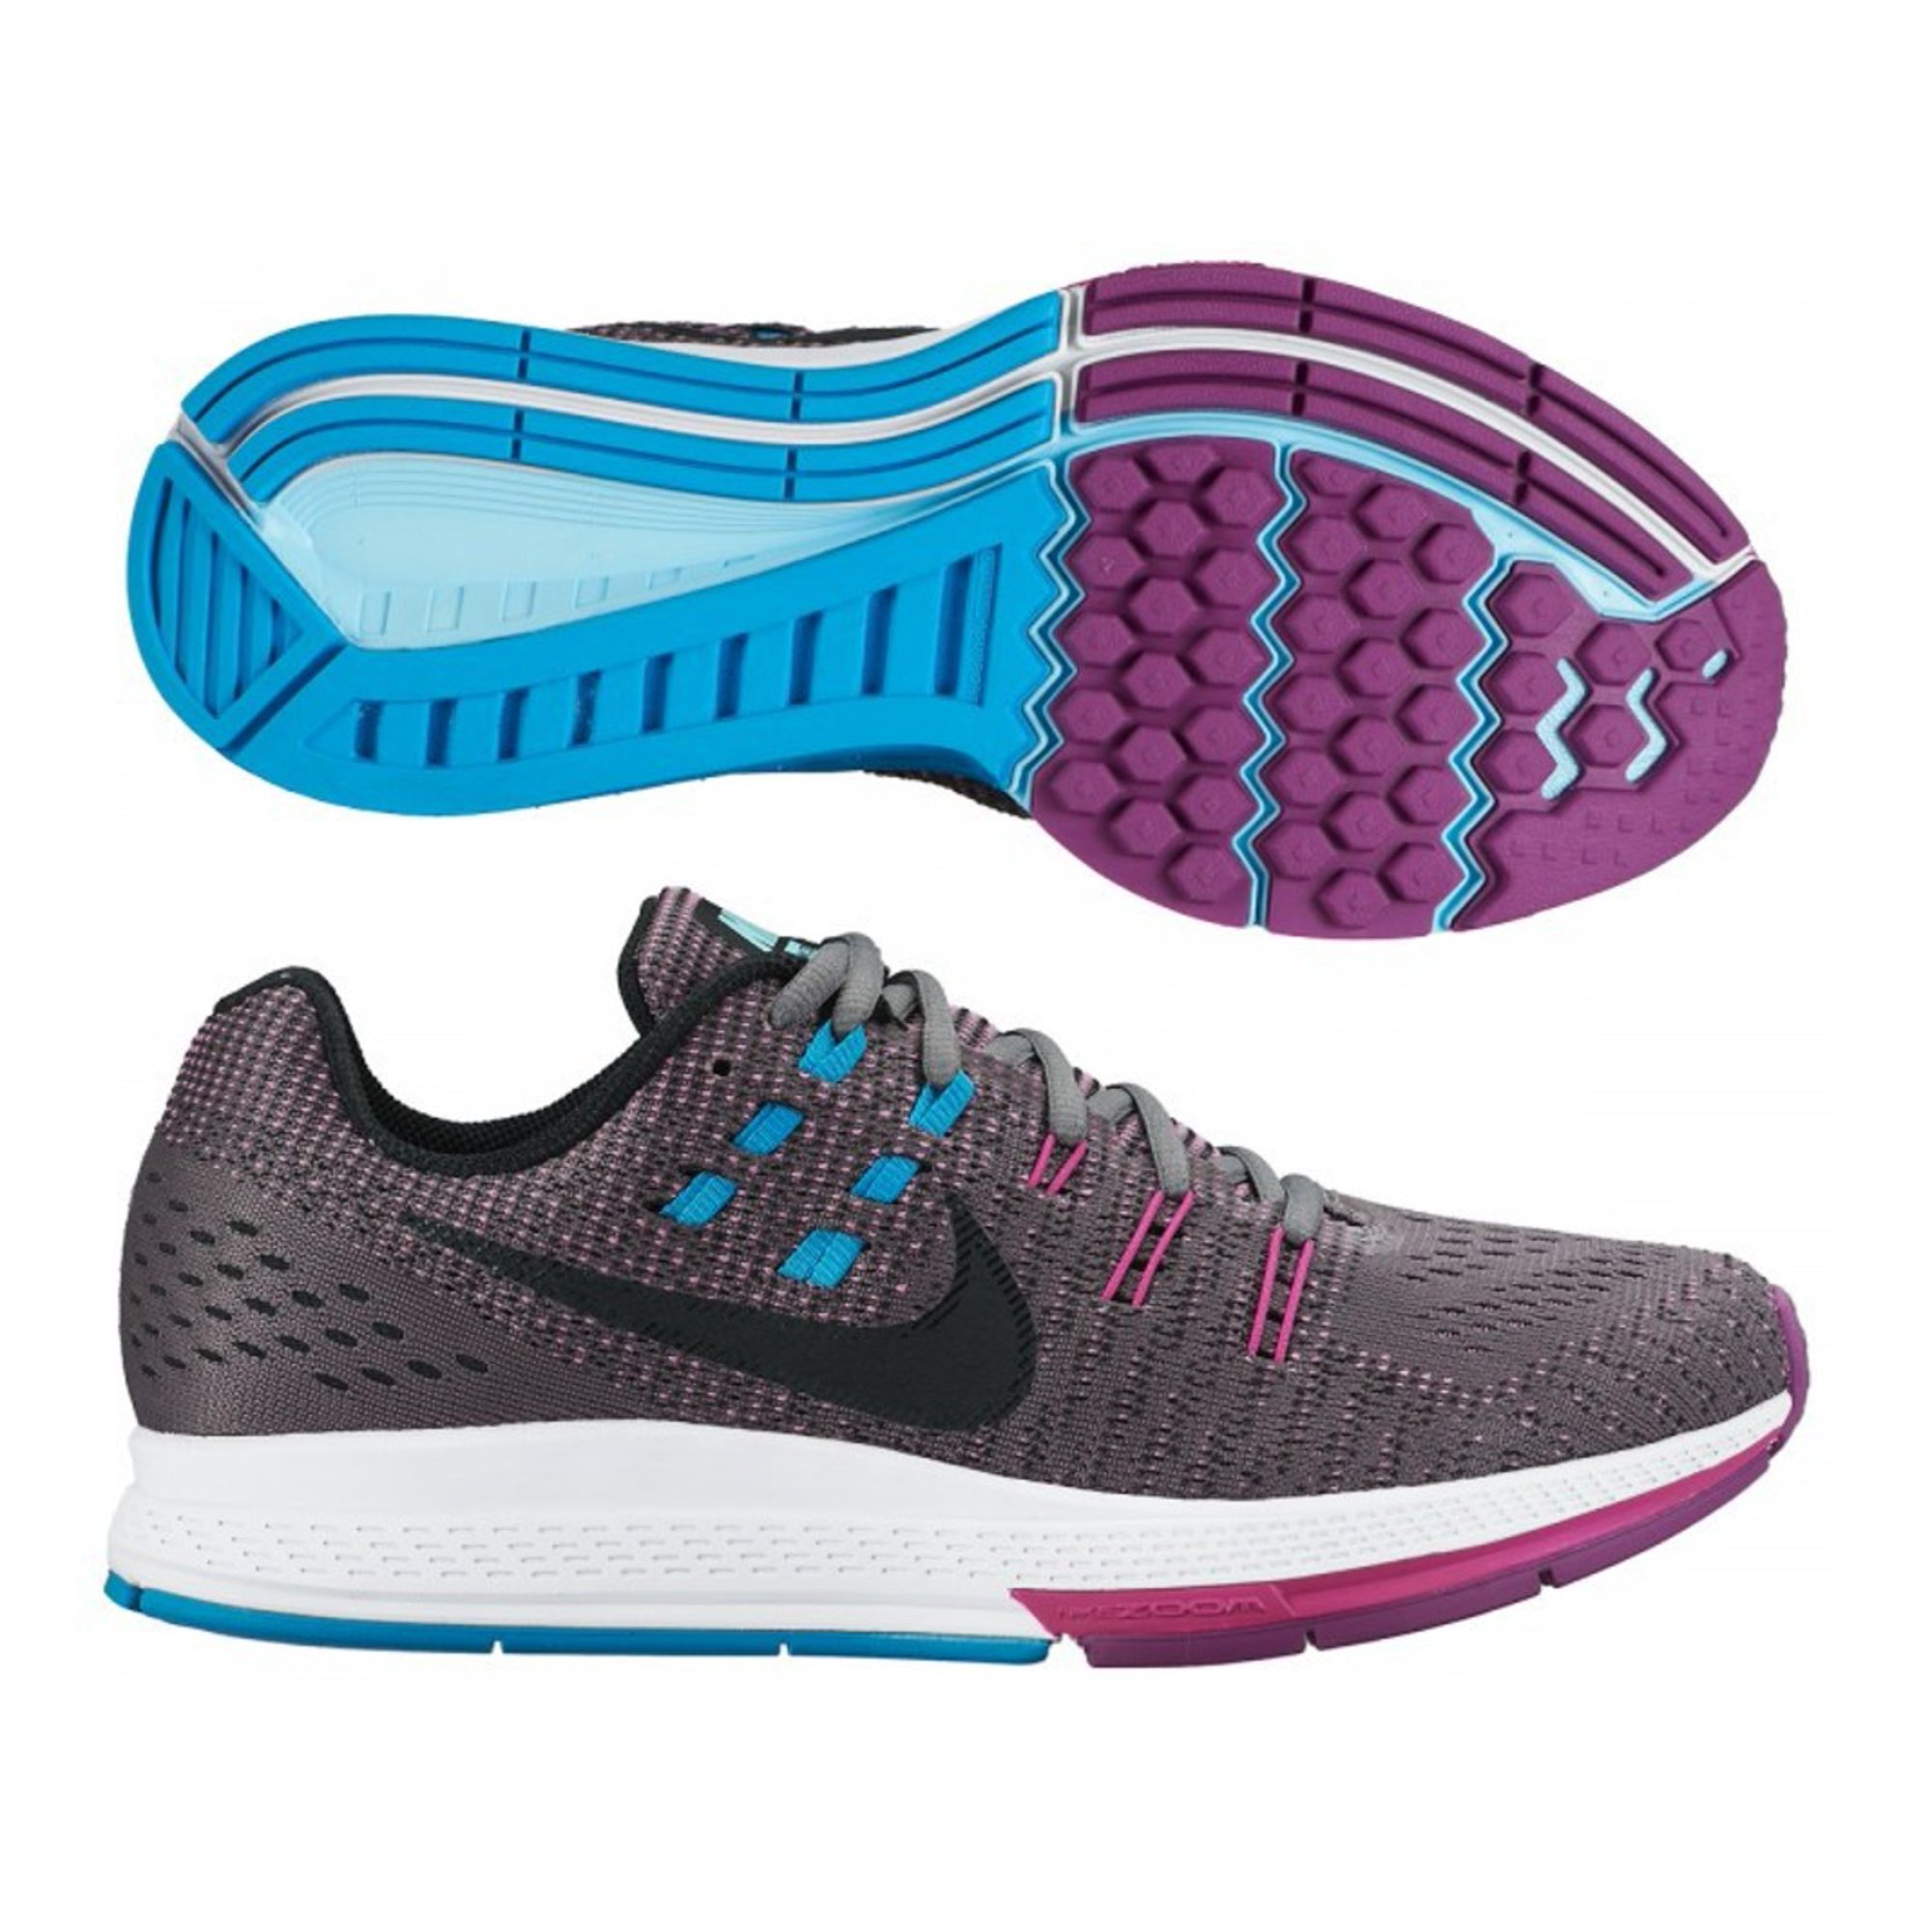 competitive price 230e4 068ee Nike Womens Air Zoom Structure 19 Cool Fabric Low ...